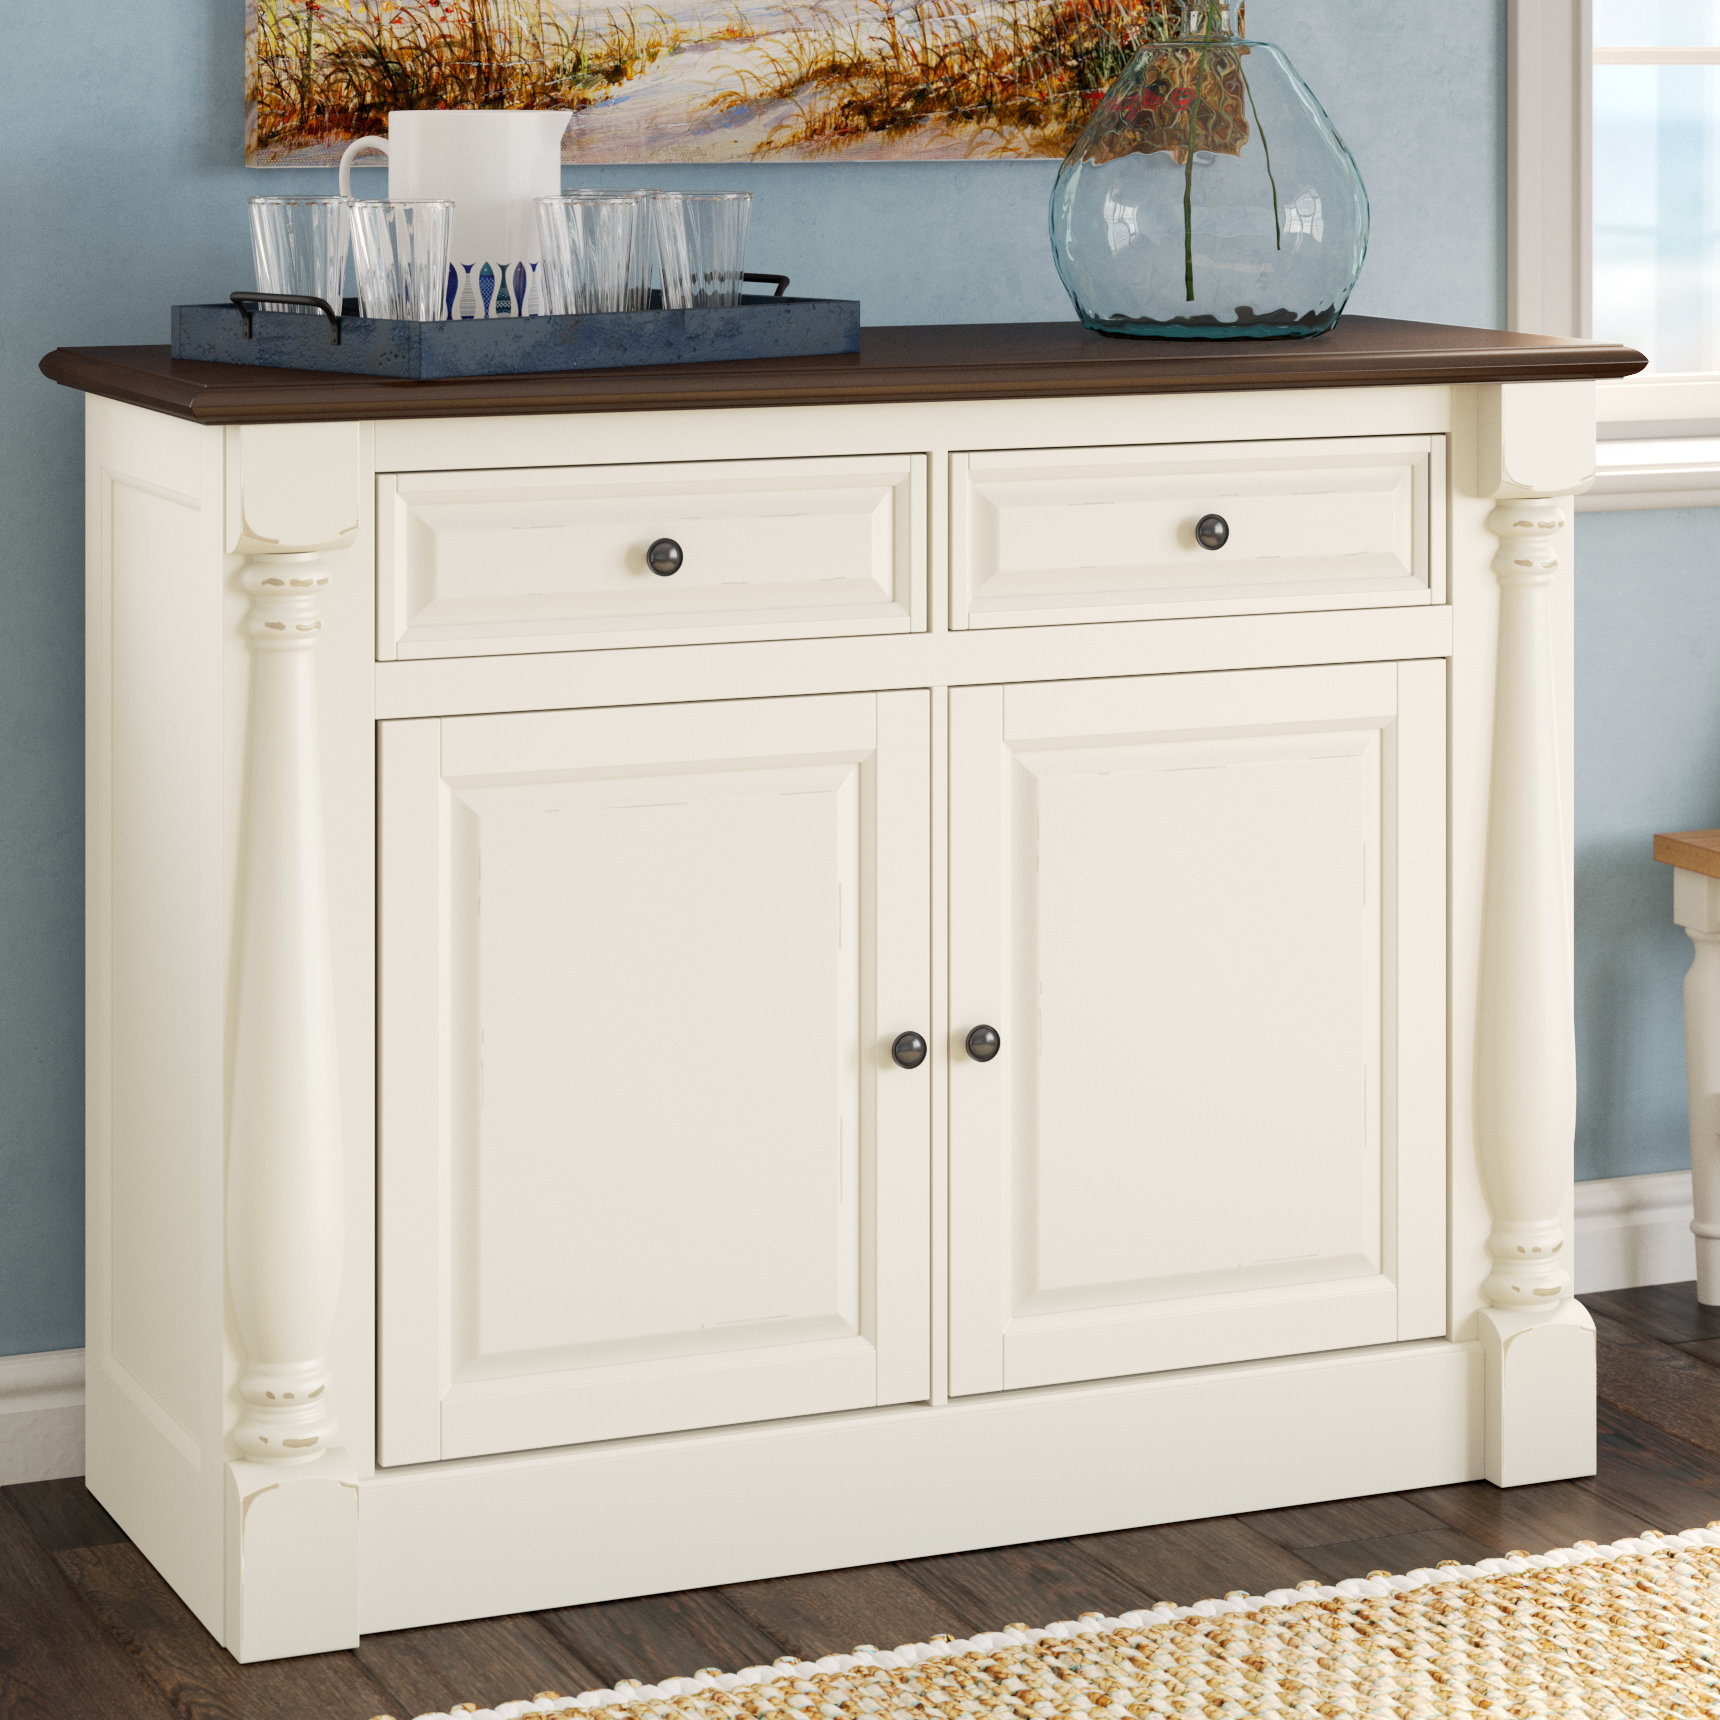 Farmhouse & Rustic Sideboards & Buffets | Birch Lane Throughout Elyza Credenzas (View 9 of 20)